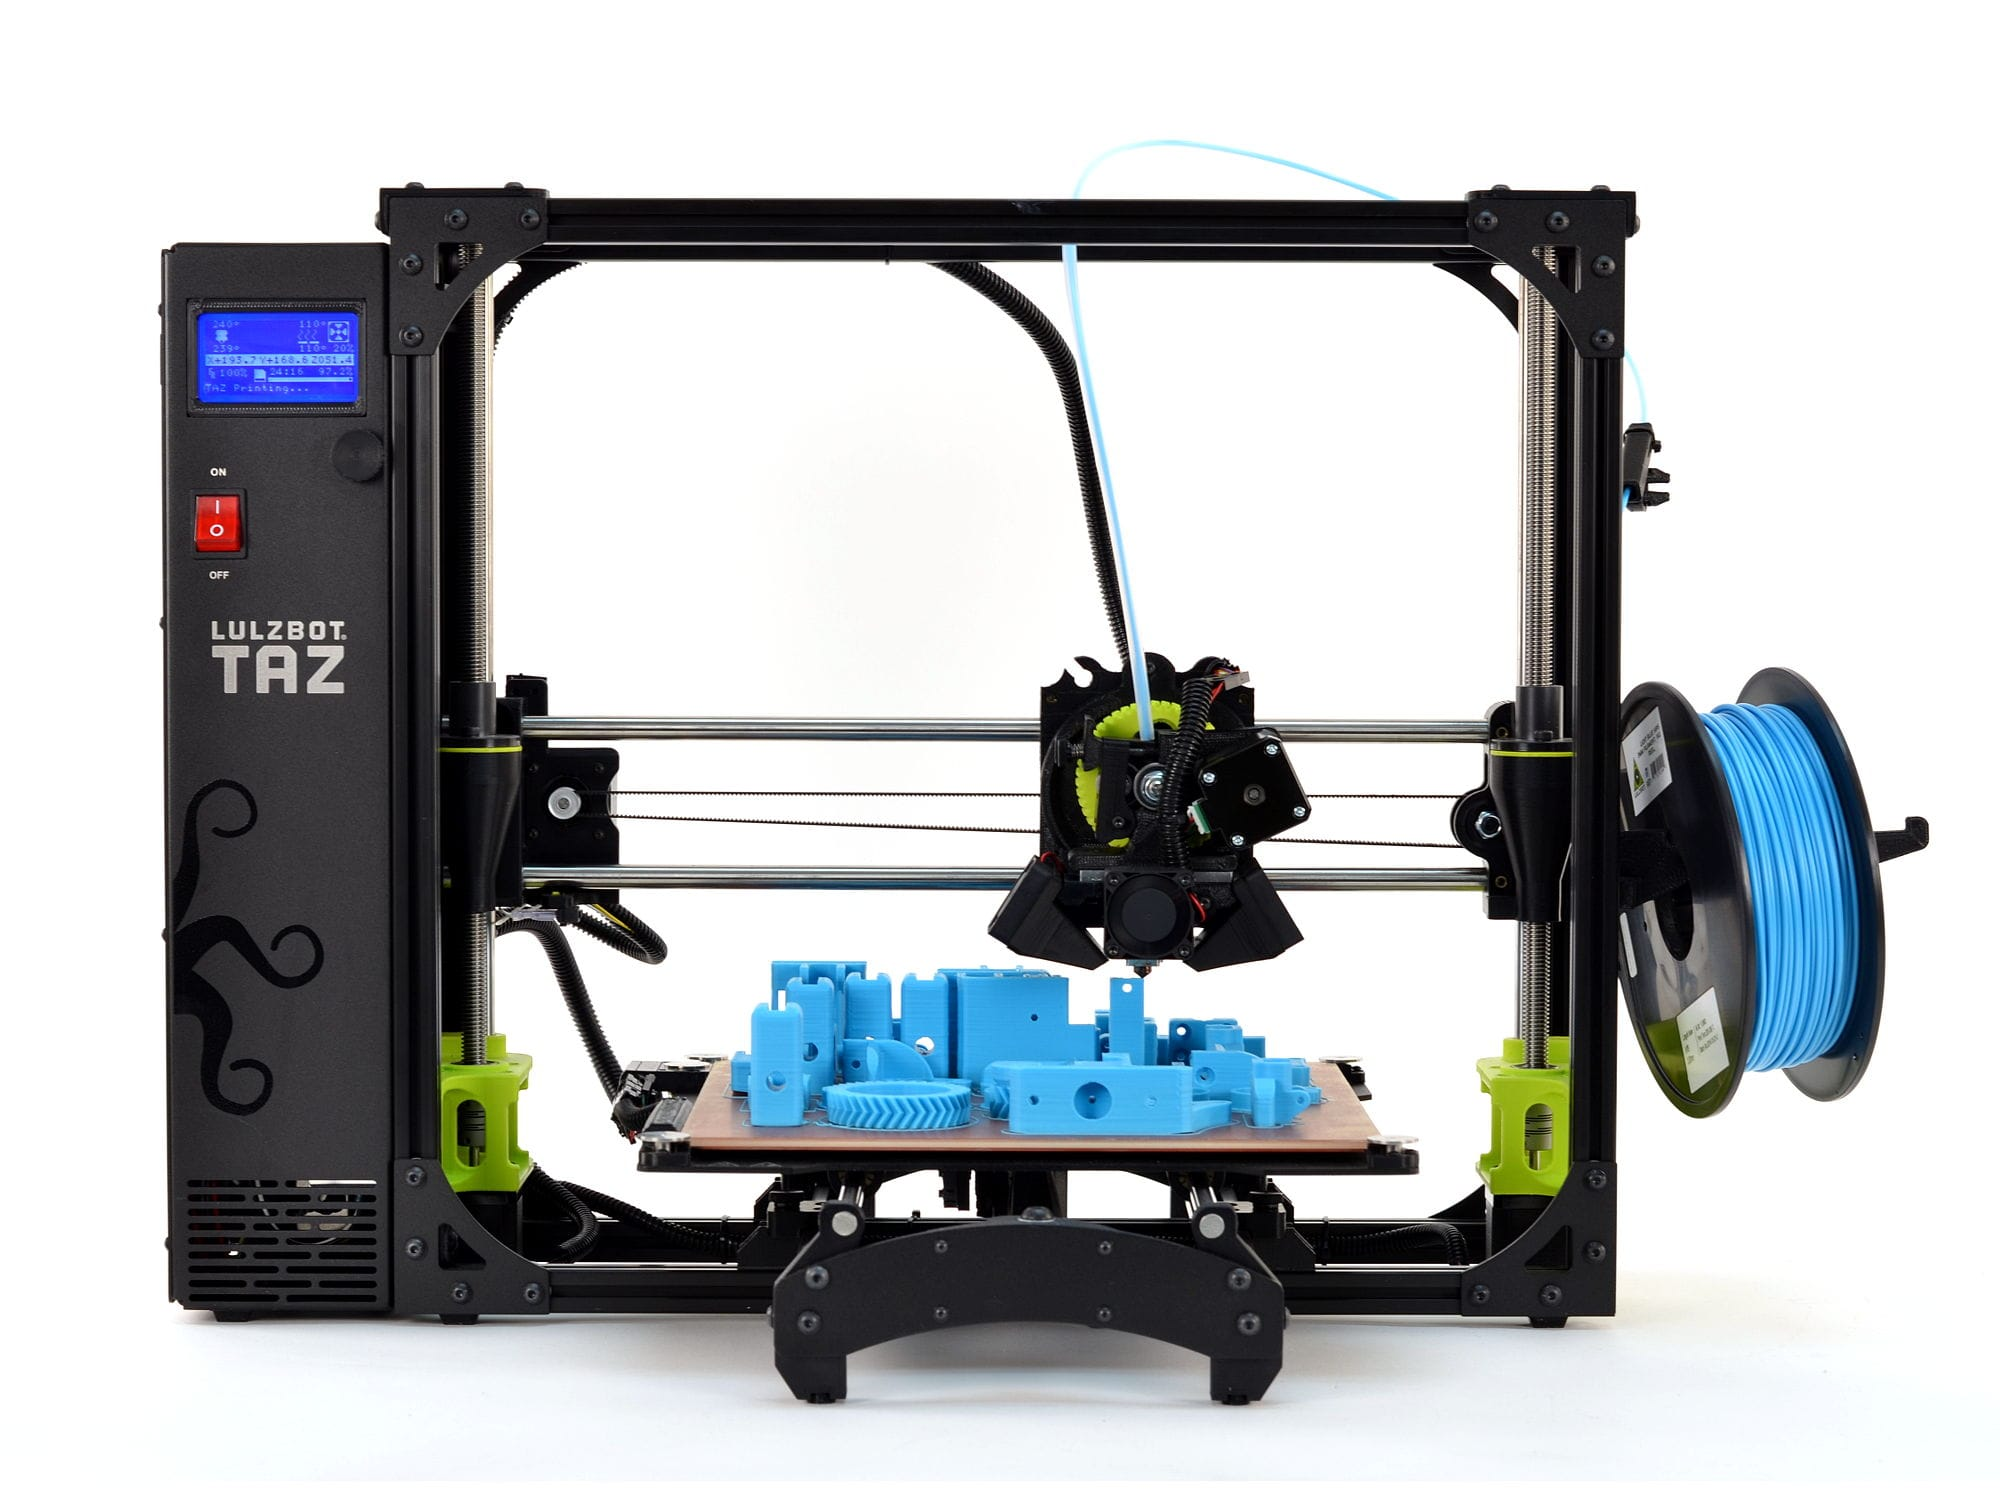 Front view of the current LulzBot TAZ 6